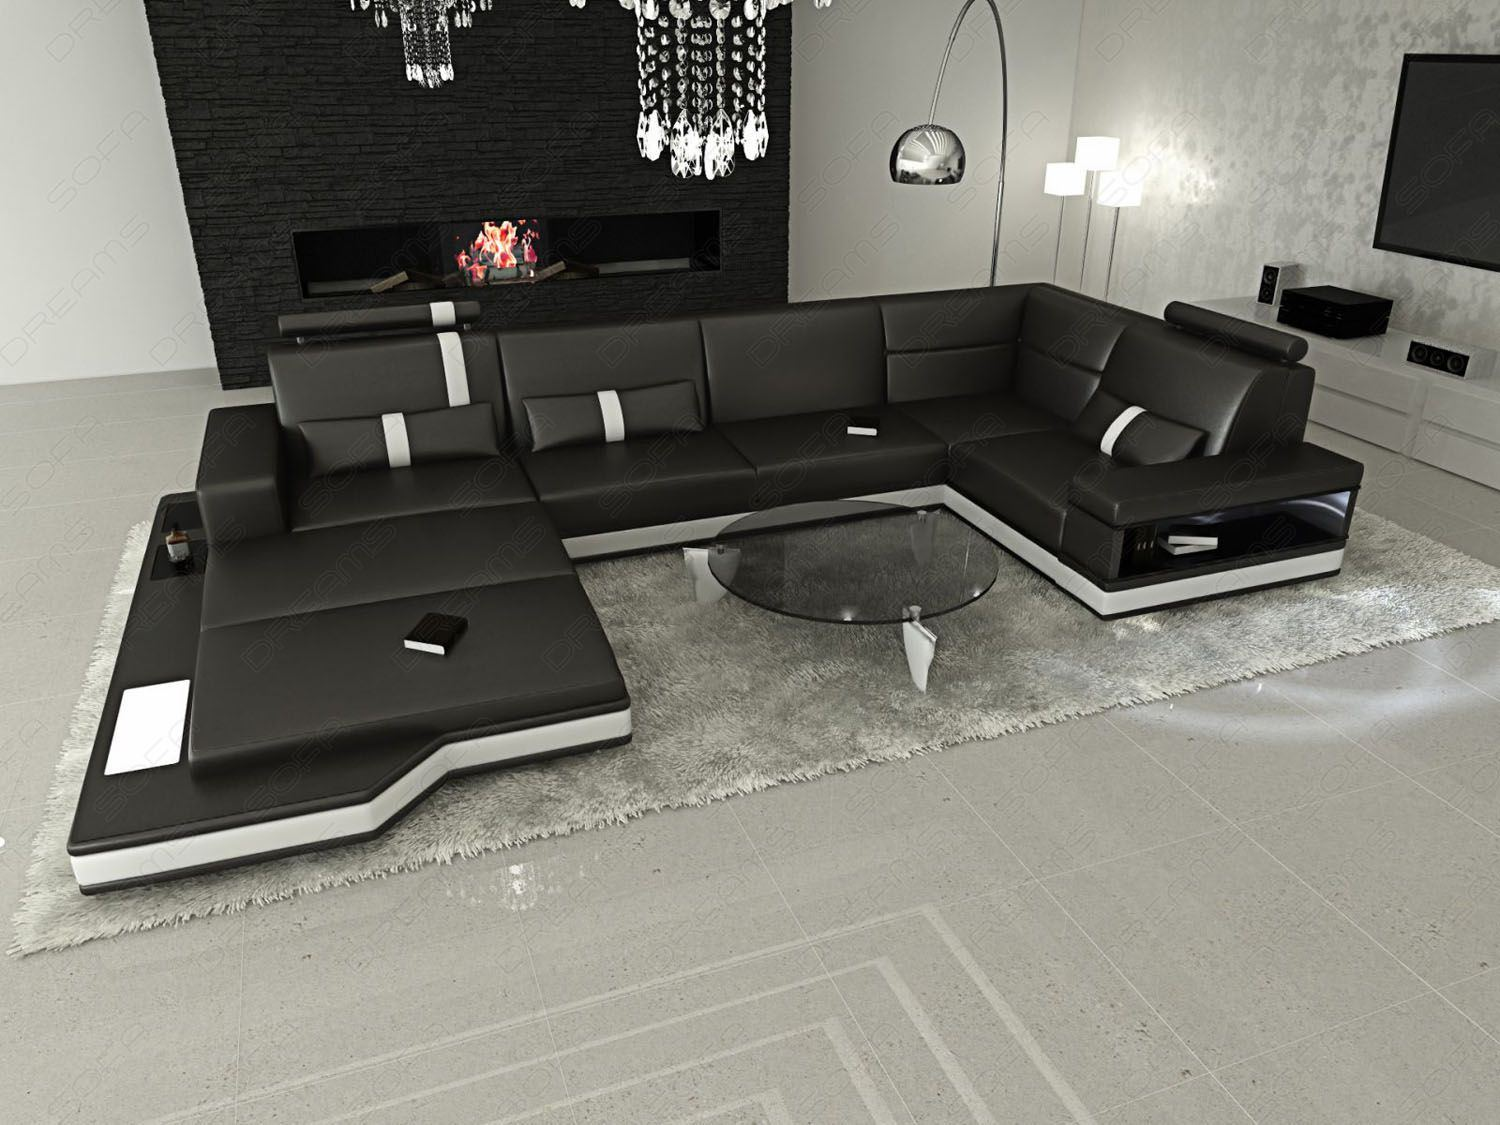 sofas ledersofa ledersofa wohnlandschaft messana. Black Bedroom Furniture Sets. Home Design Ideas